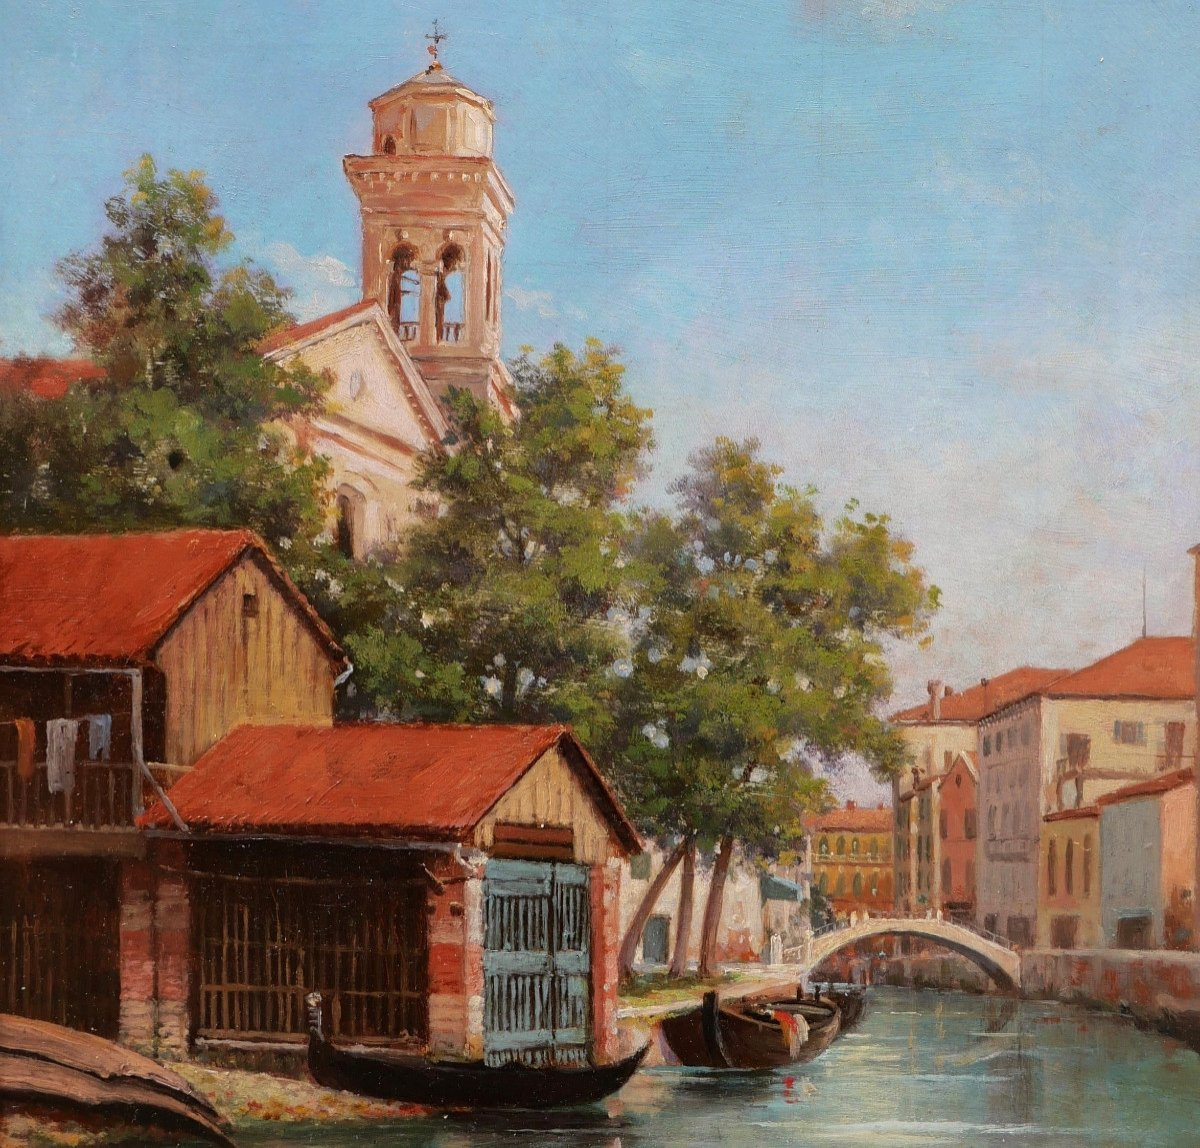 A. Or L. Mathieu, View Of A Canal In Venice With A Gondola Garage-photo-2